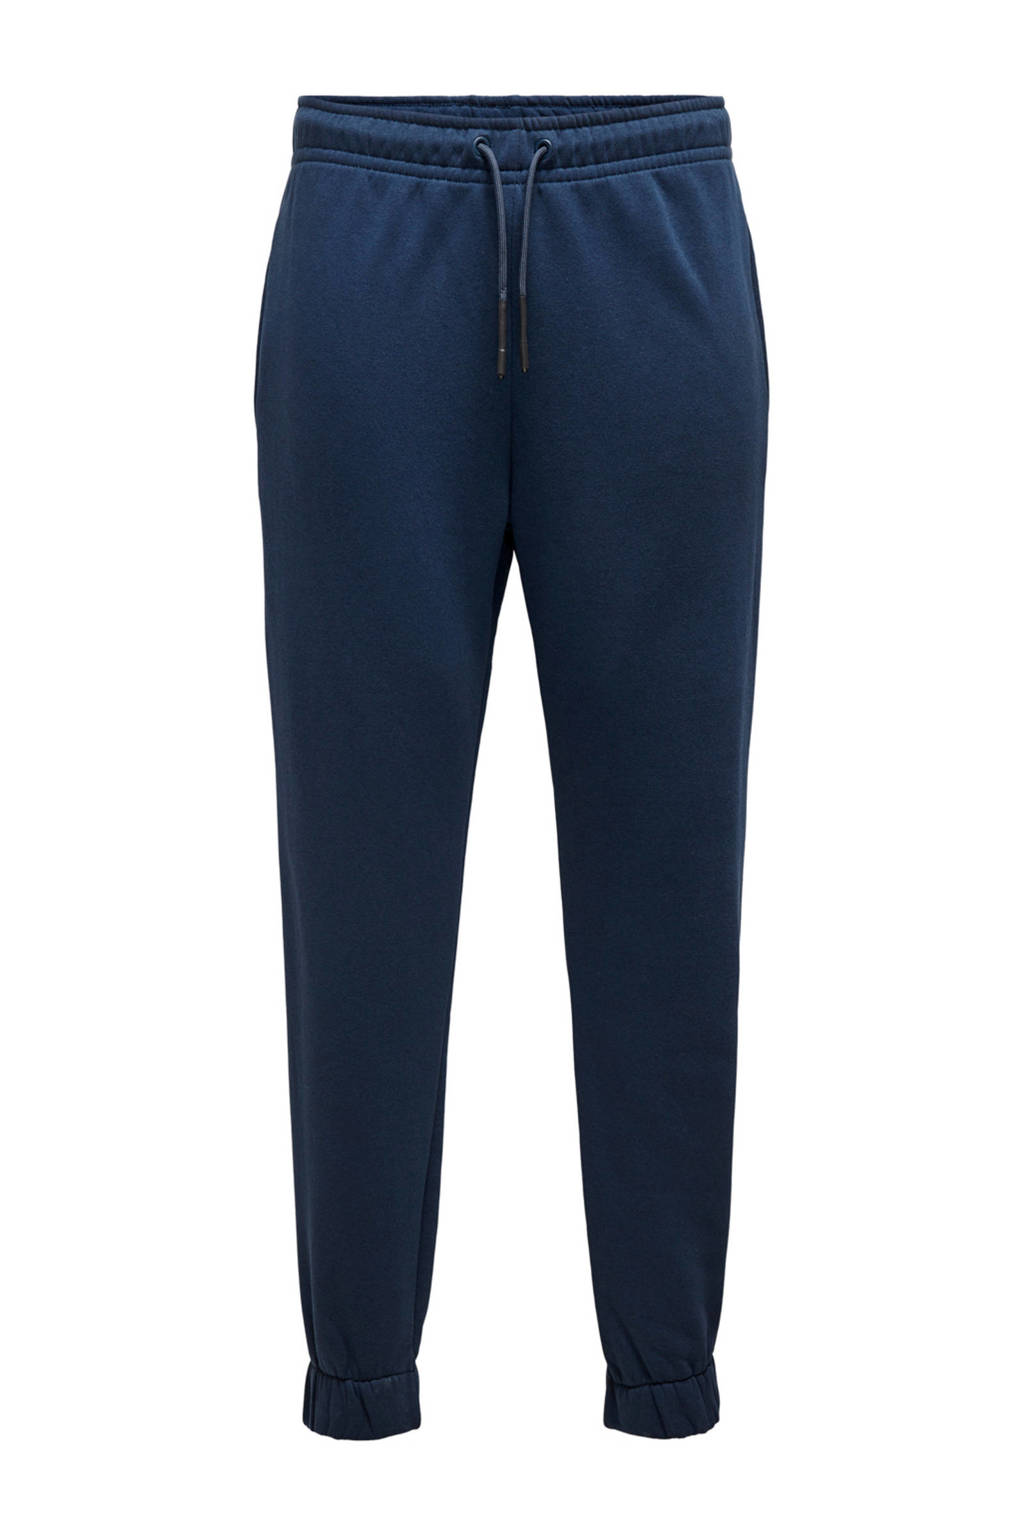 ONLY & SONS regular fit joggingbroek donkerblauw, Donkerblauw